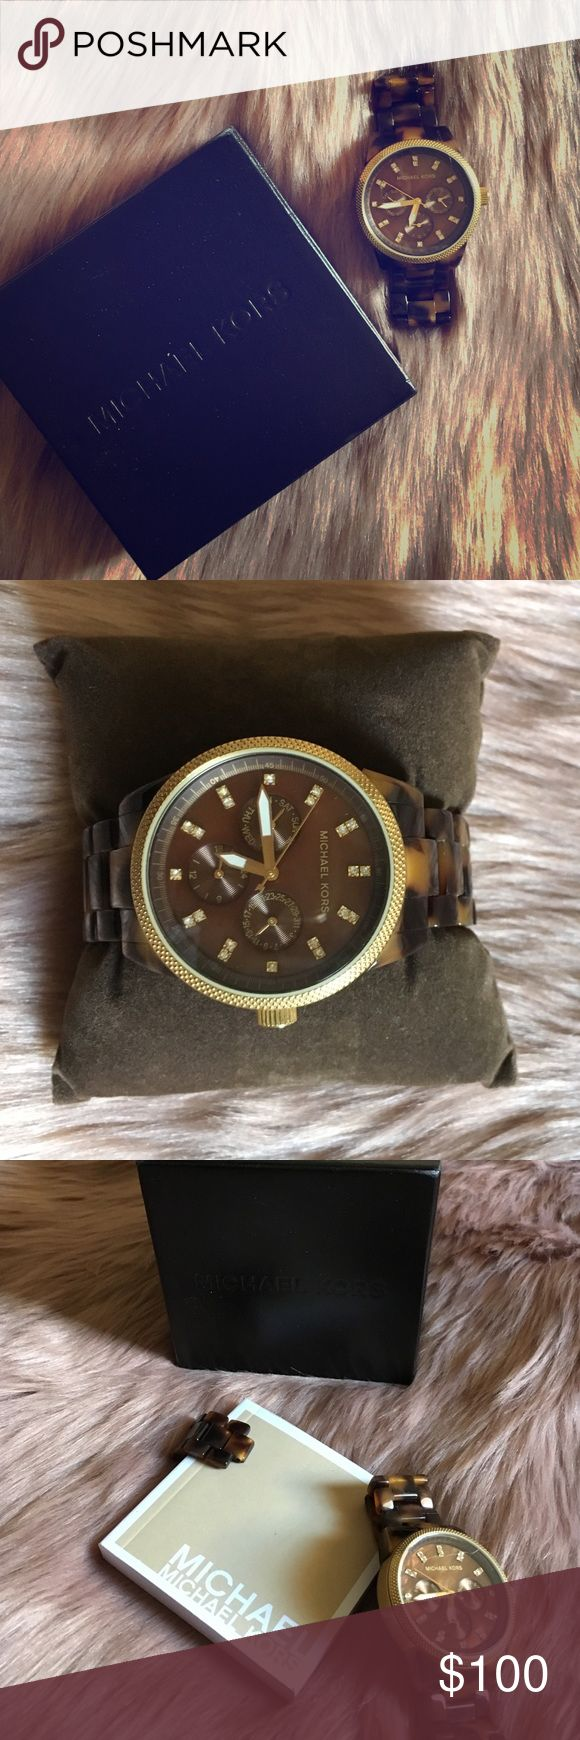 Brown & Black Michael Kors Watch Brown & black Watch with gold details.                 Don't be afraid to use the offer option, we can figure something out if you like anything! Michael Kors Accessories Watches